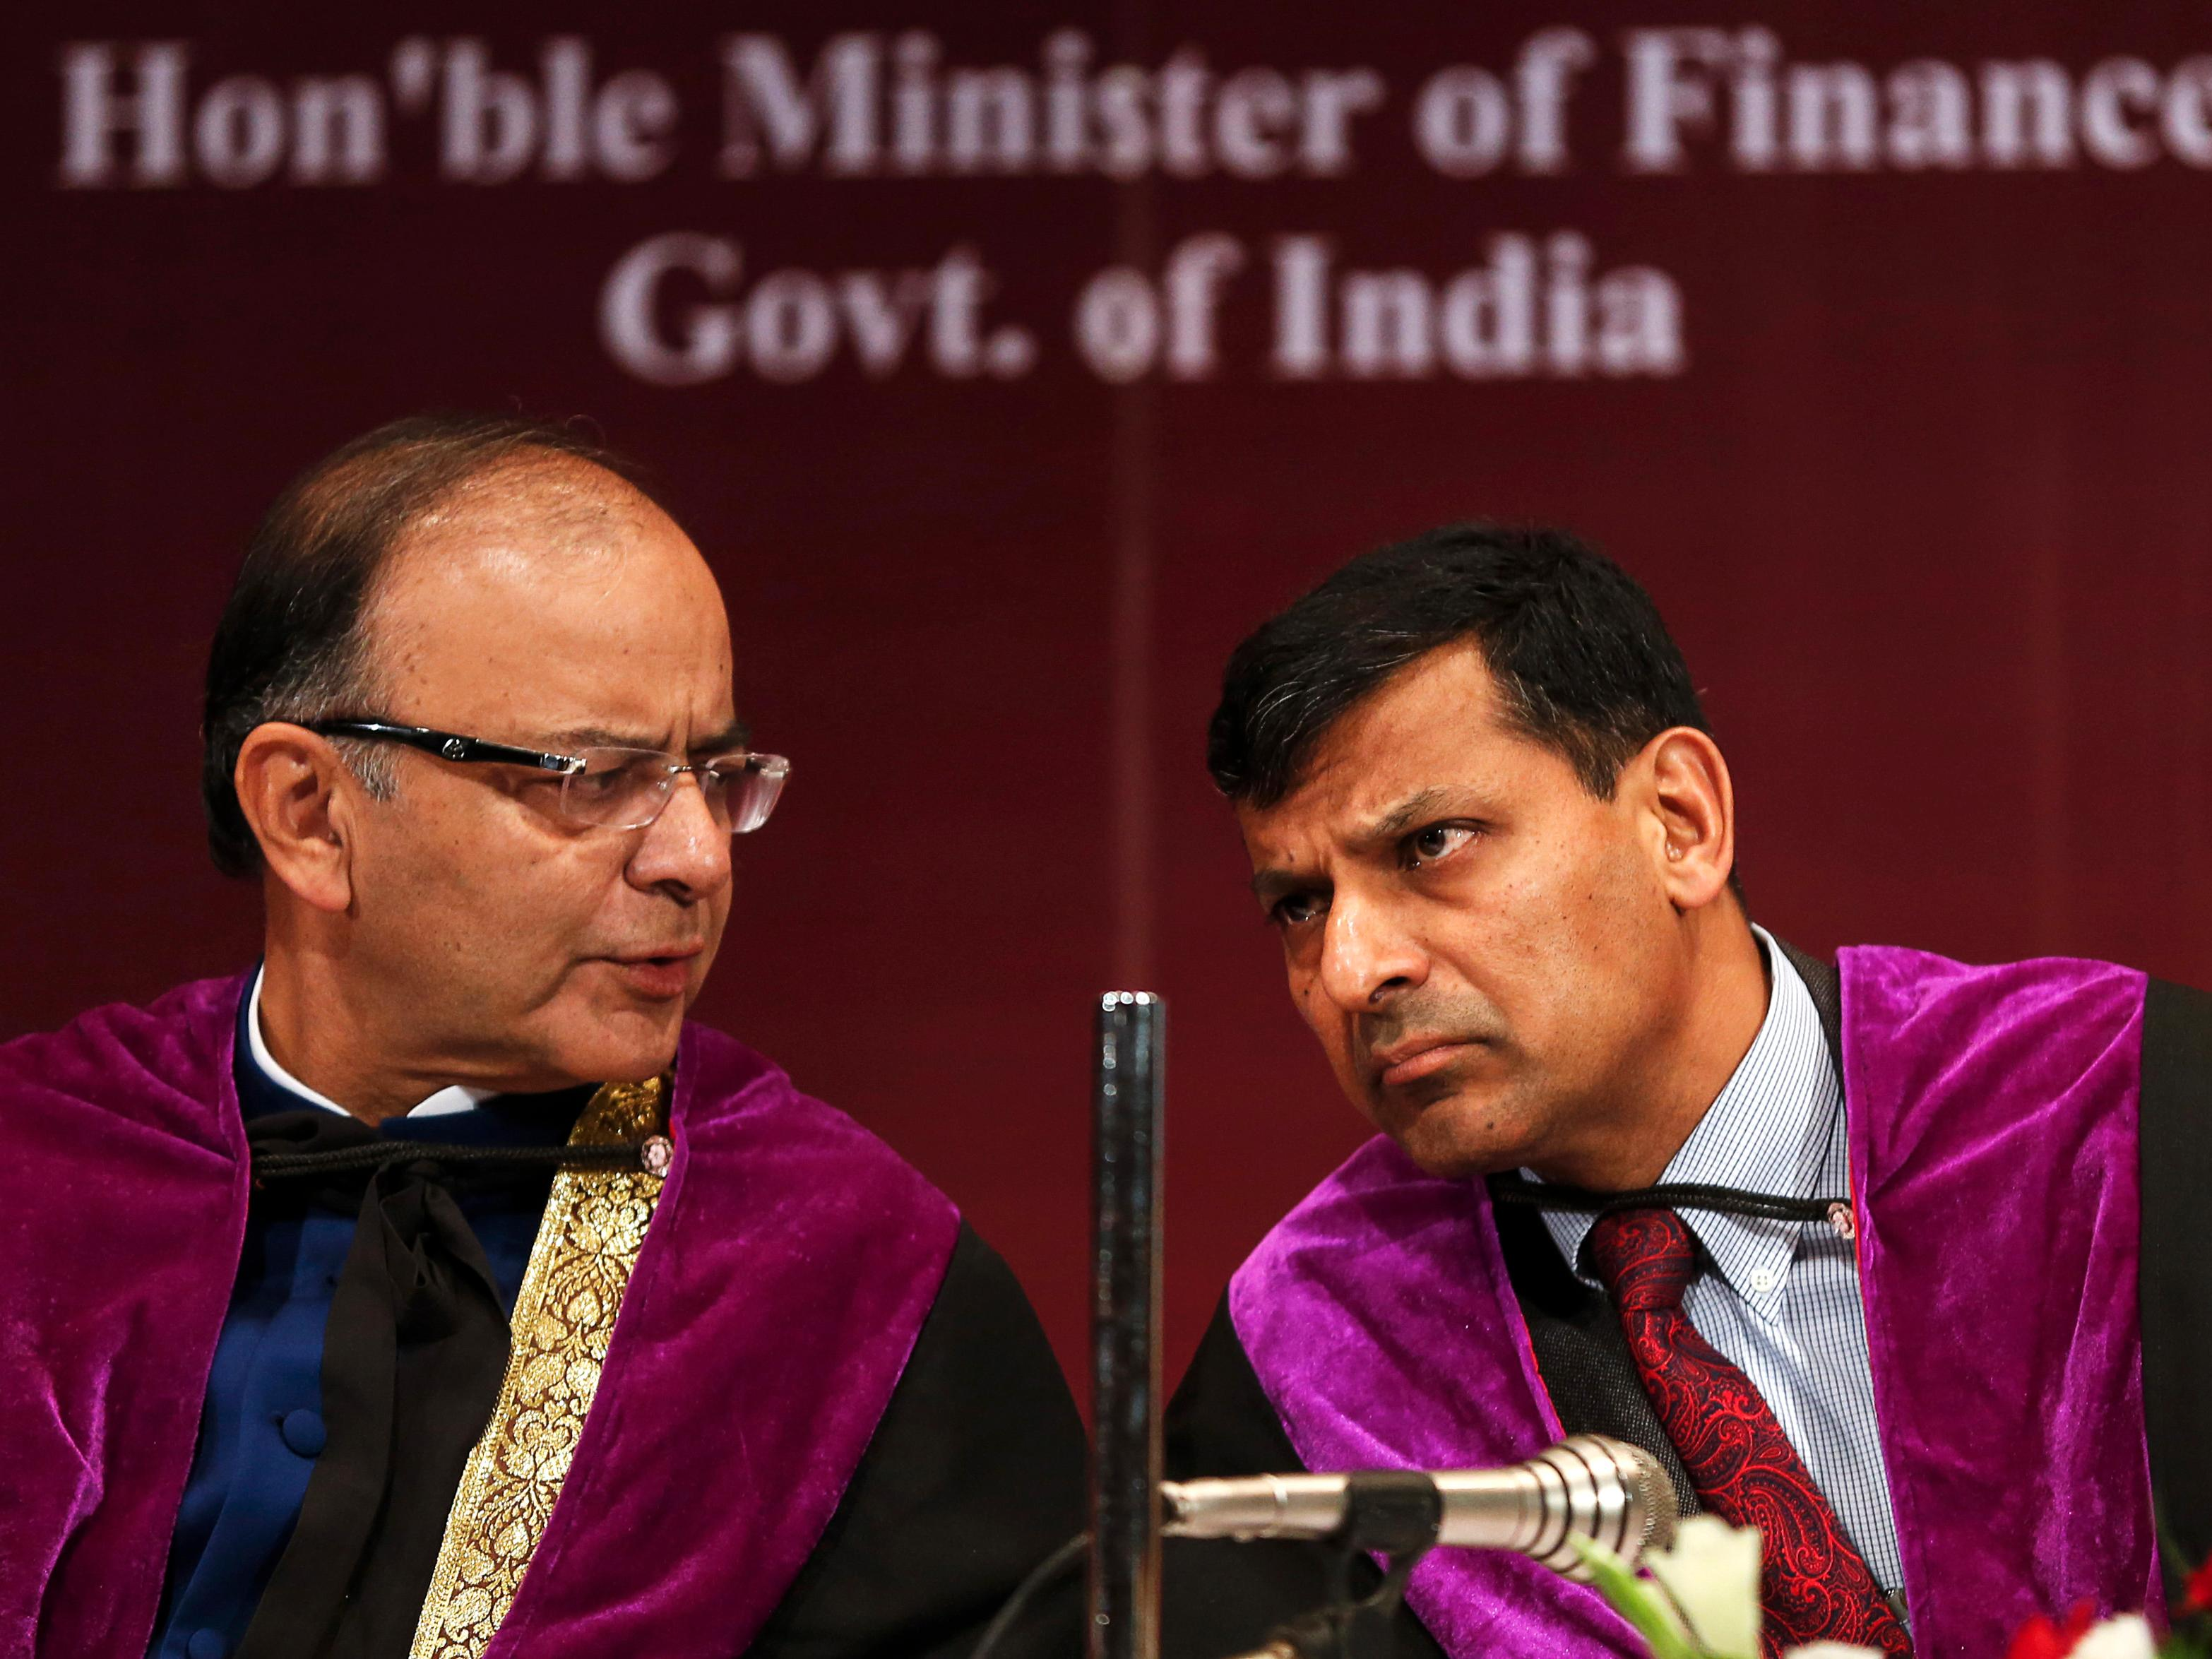 The Indian government has to find someone soon to replace the head of the central bank